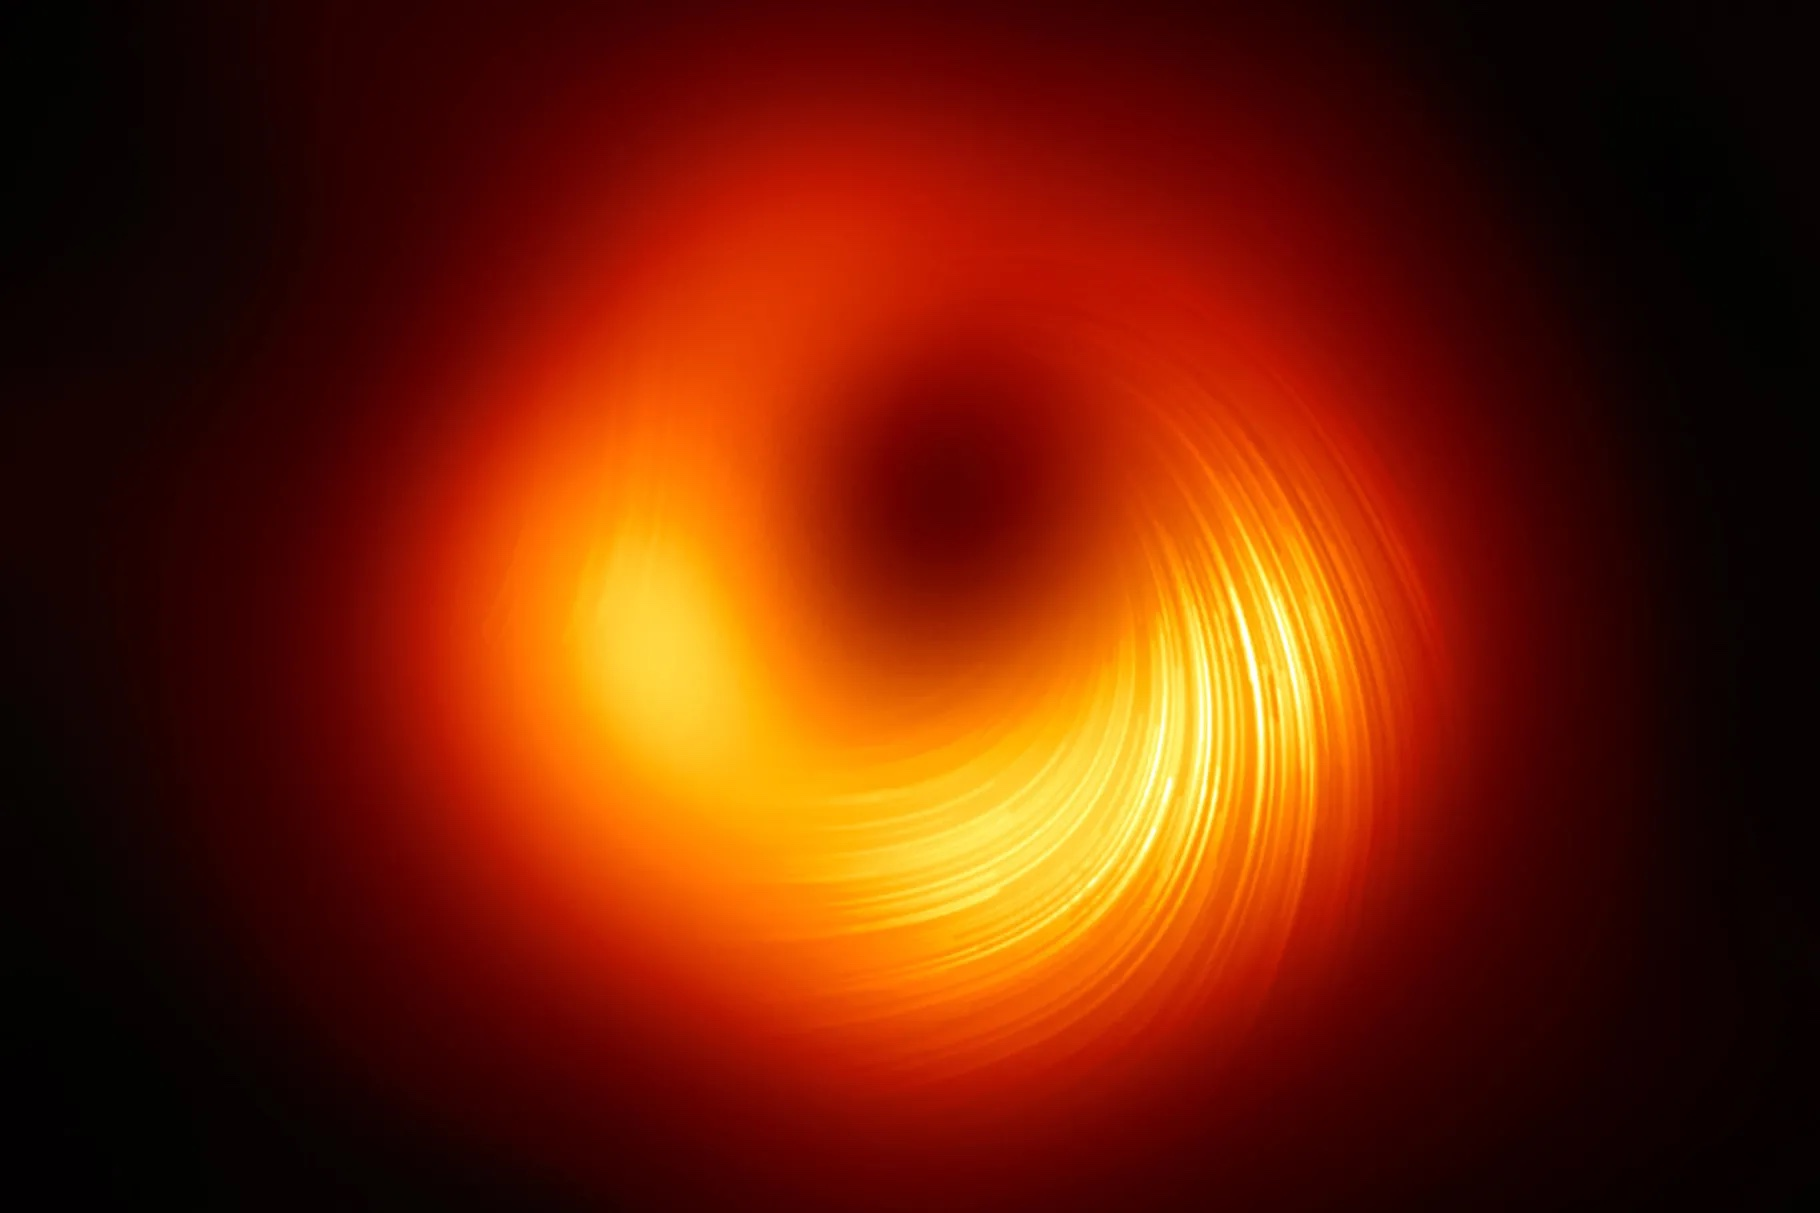 A Black Hole. Fiery orange and yellow light swirls around the black centre of a black hole.